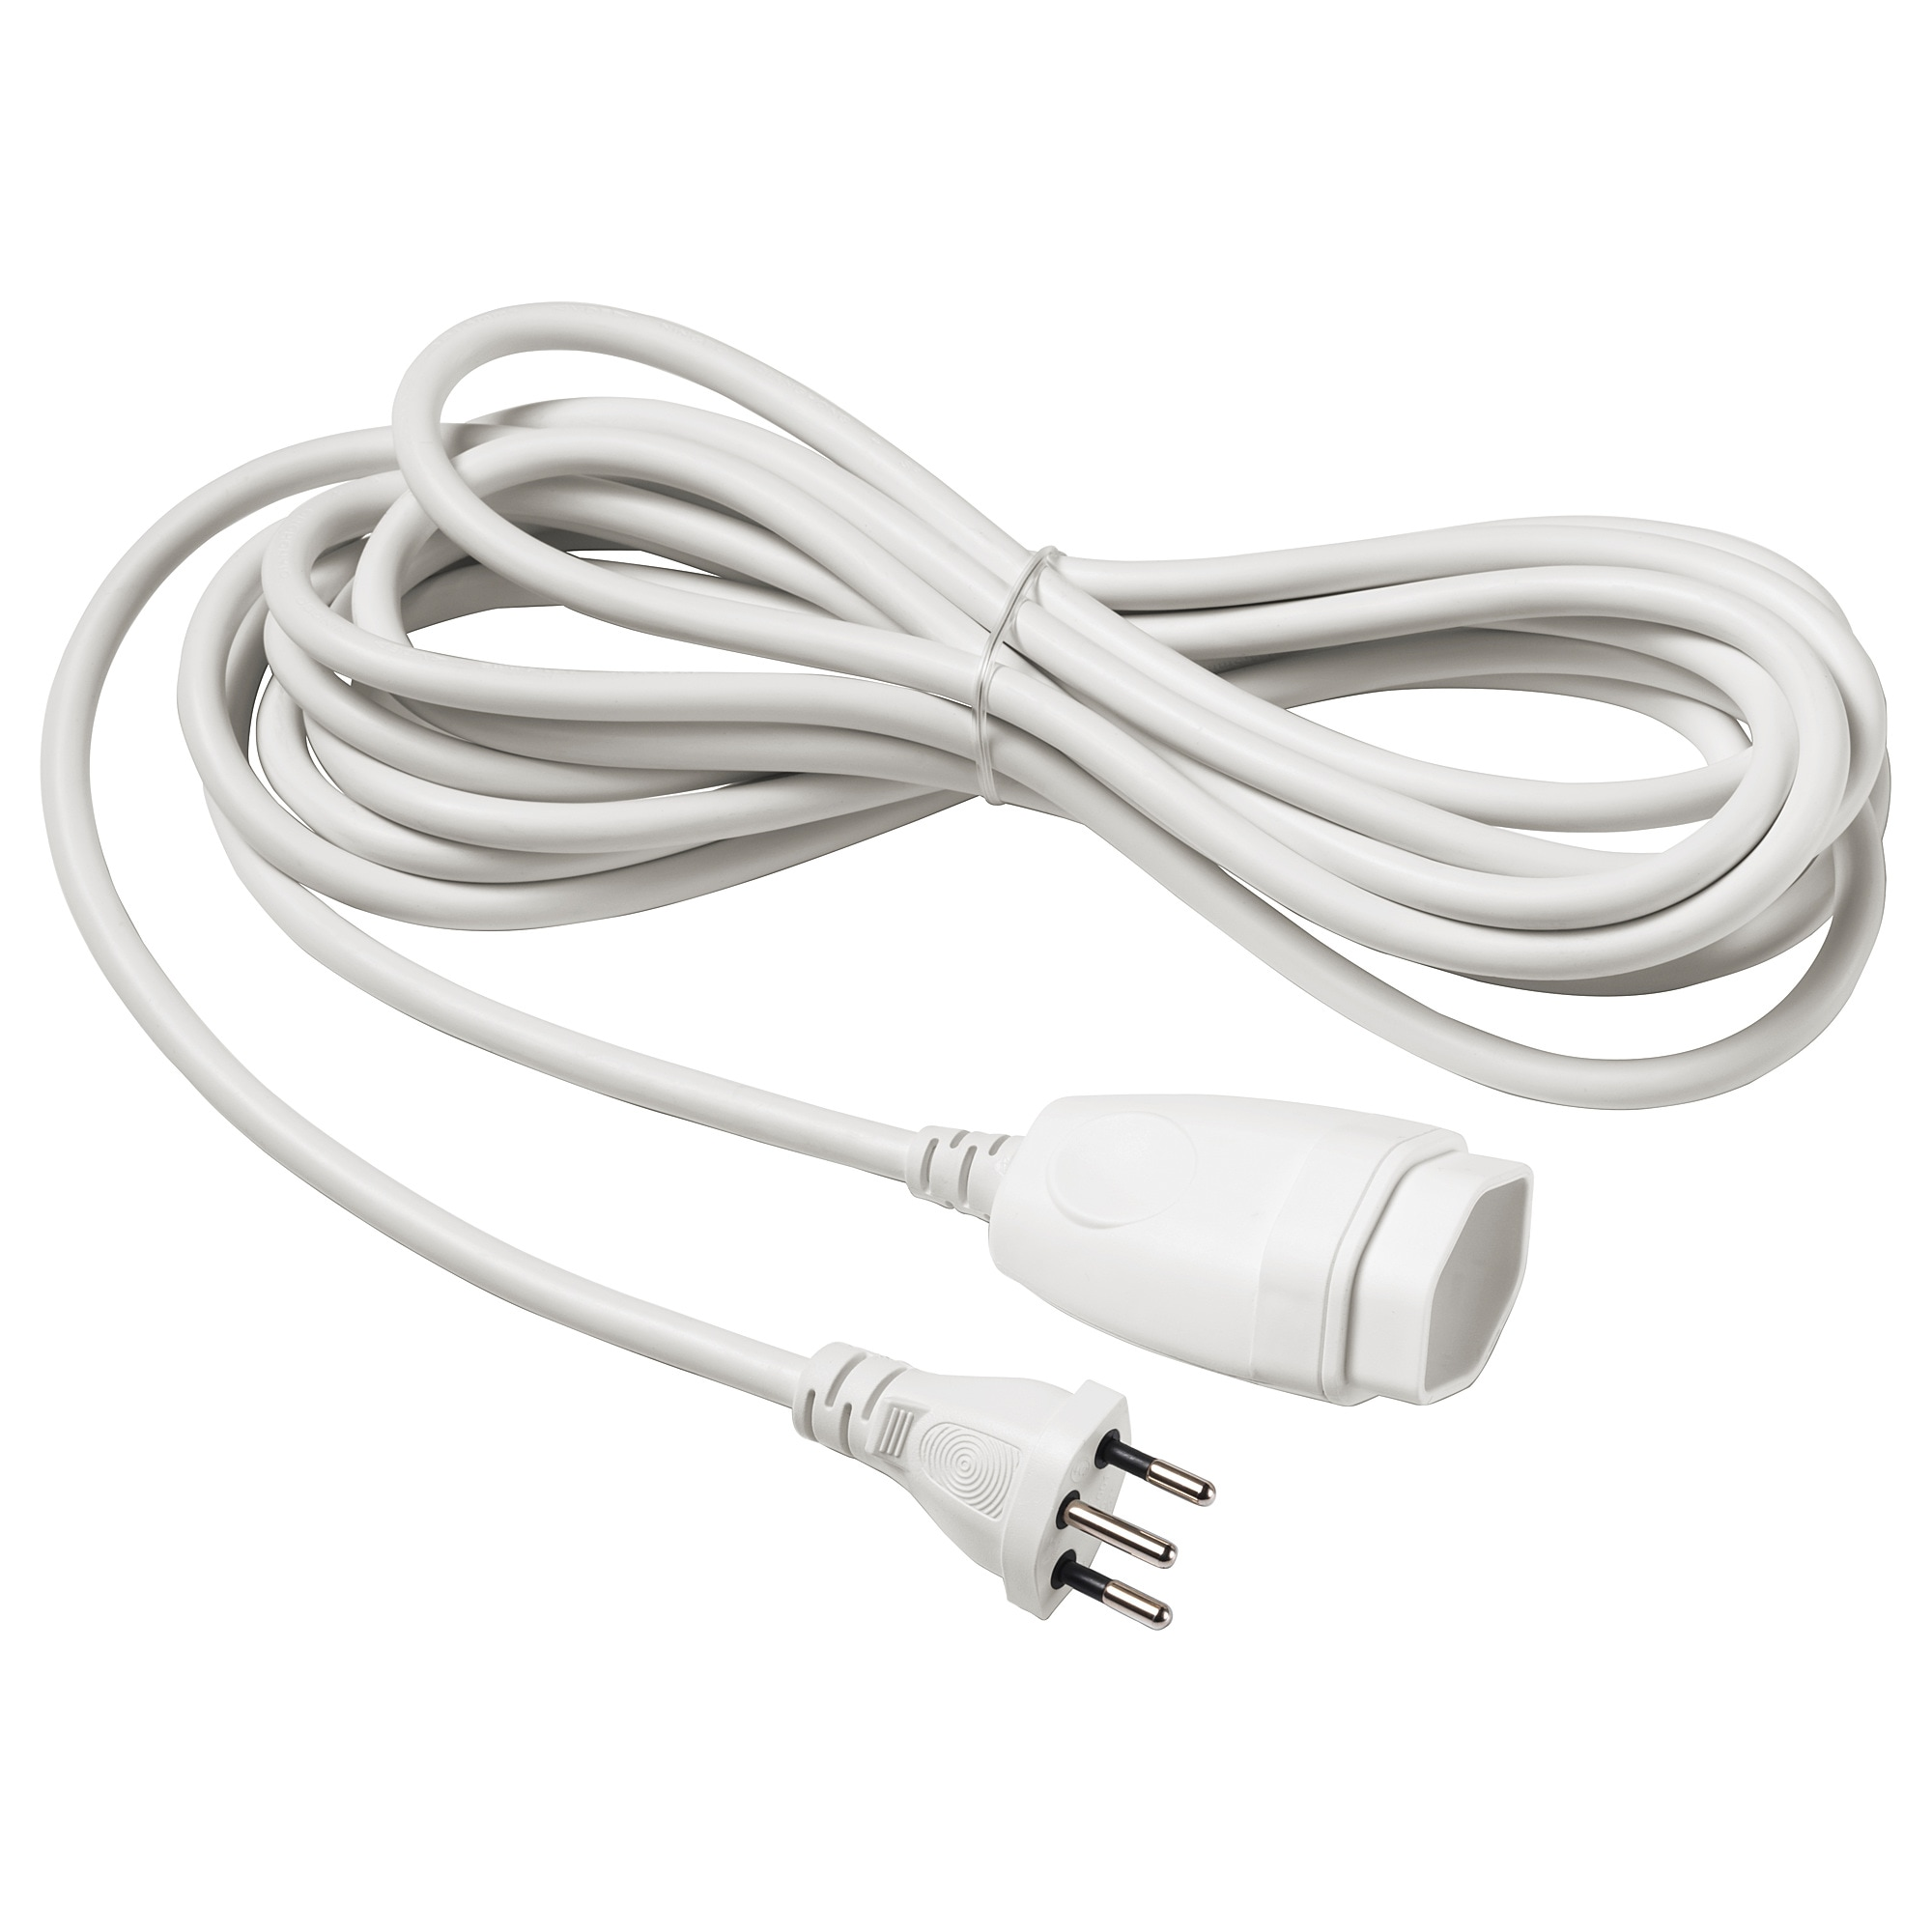 Koppla Extension Cord Ikea Electrical Wiring Terms Inter Systems Bv 1999 2018 Privacy Policy Cookies Responsible Disclosure General And Conditions